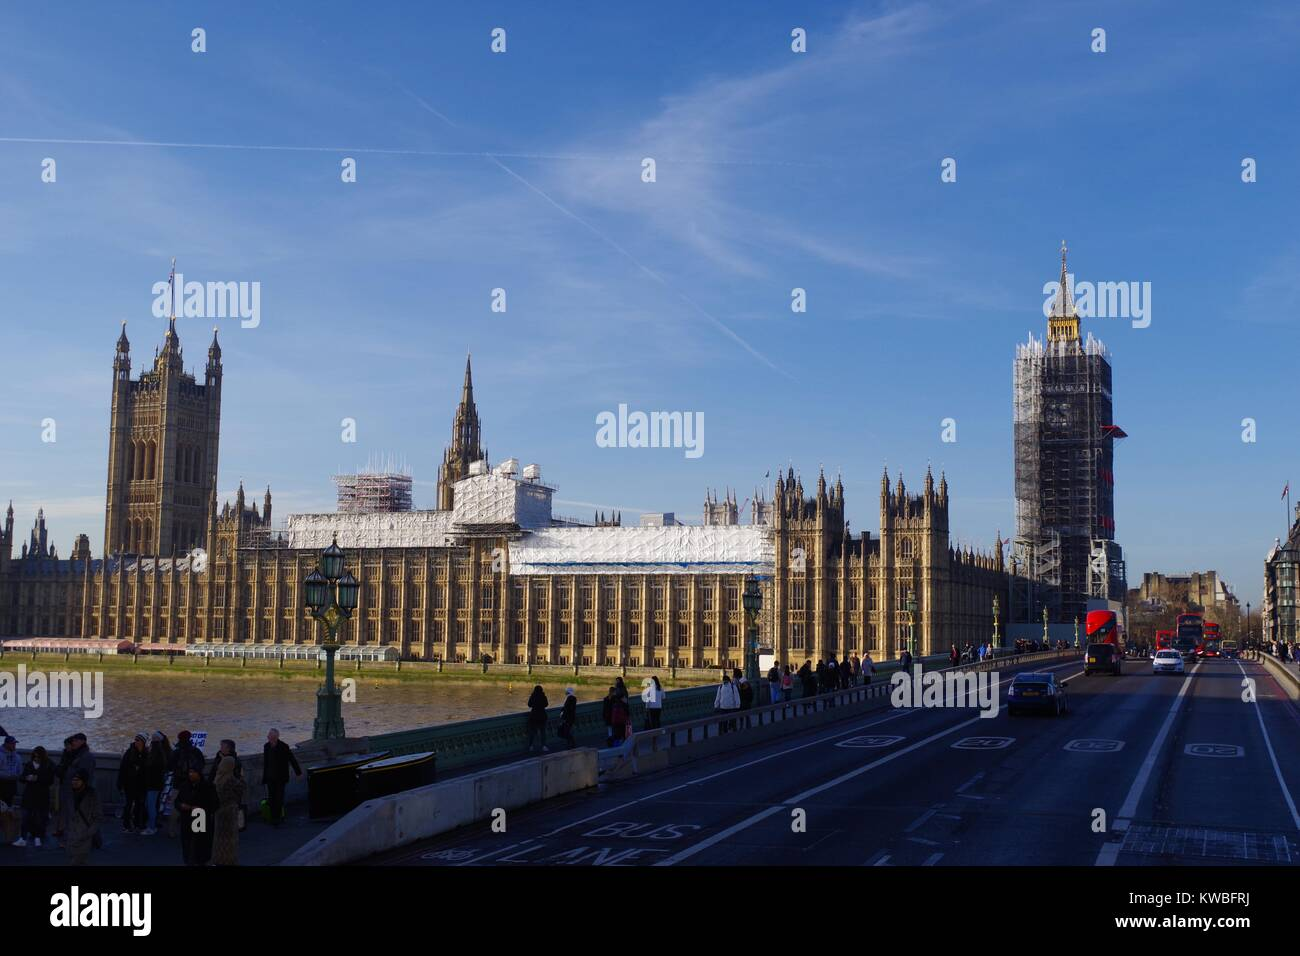 The Palace of Westminster, Elizabeth Tower Under Scaffolding, From Southbank Looking Along Westminster Bridge. - Stock Image